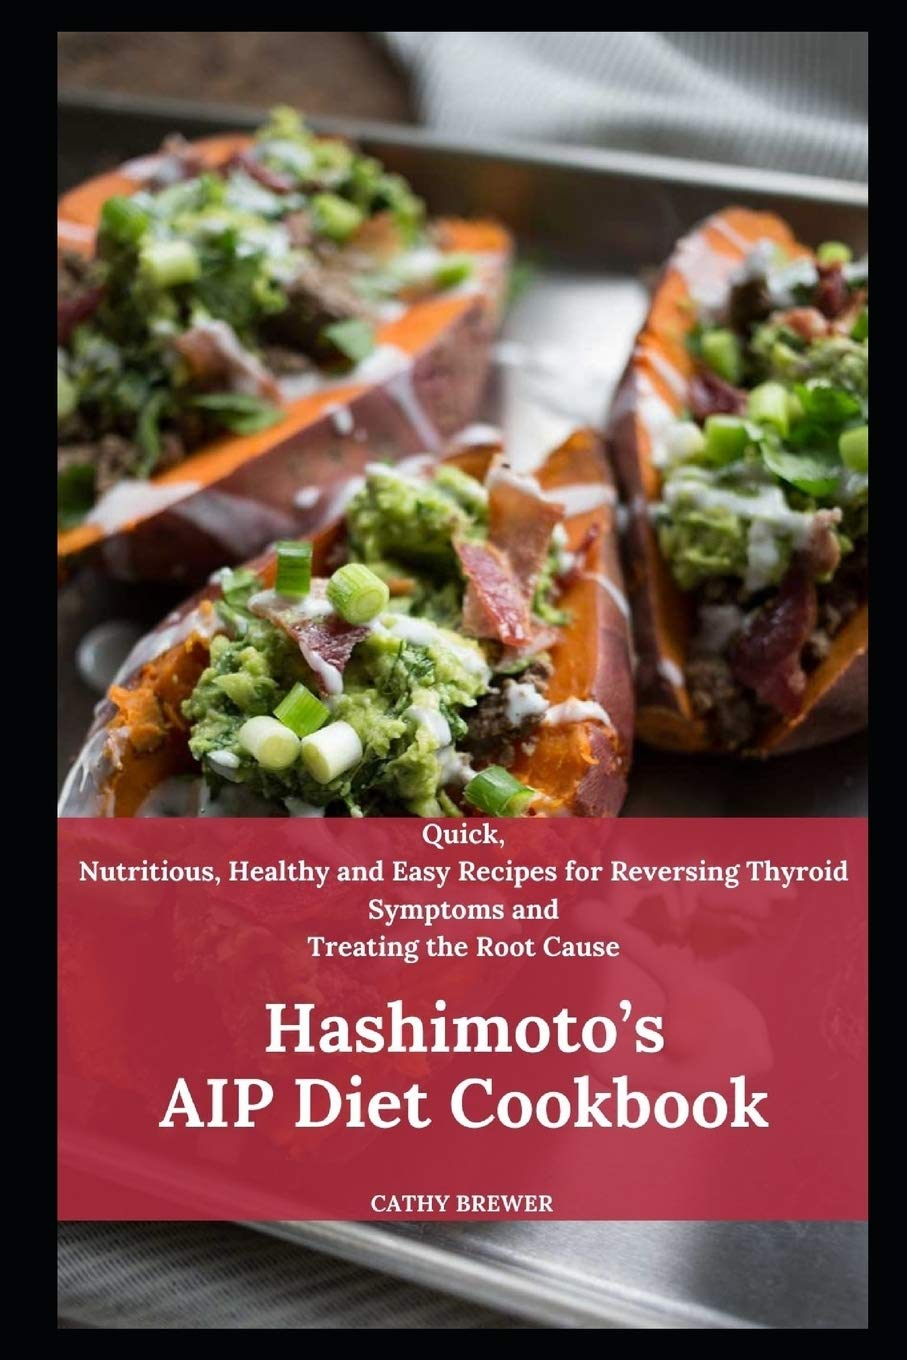 Hashimoto's AIP Diet Cookbook: Quick, Nutritious, Healthy and Easy Recipes for Reversing Thyroid Symptoms and Treating the Root Cause 1